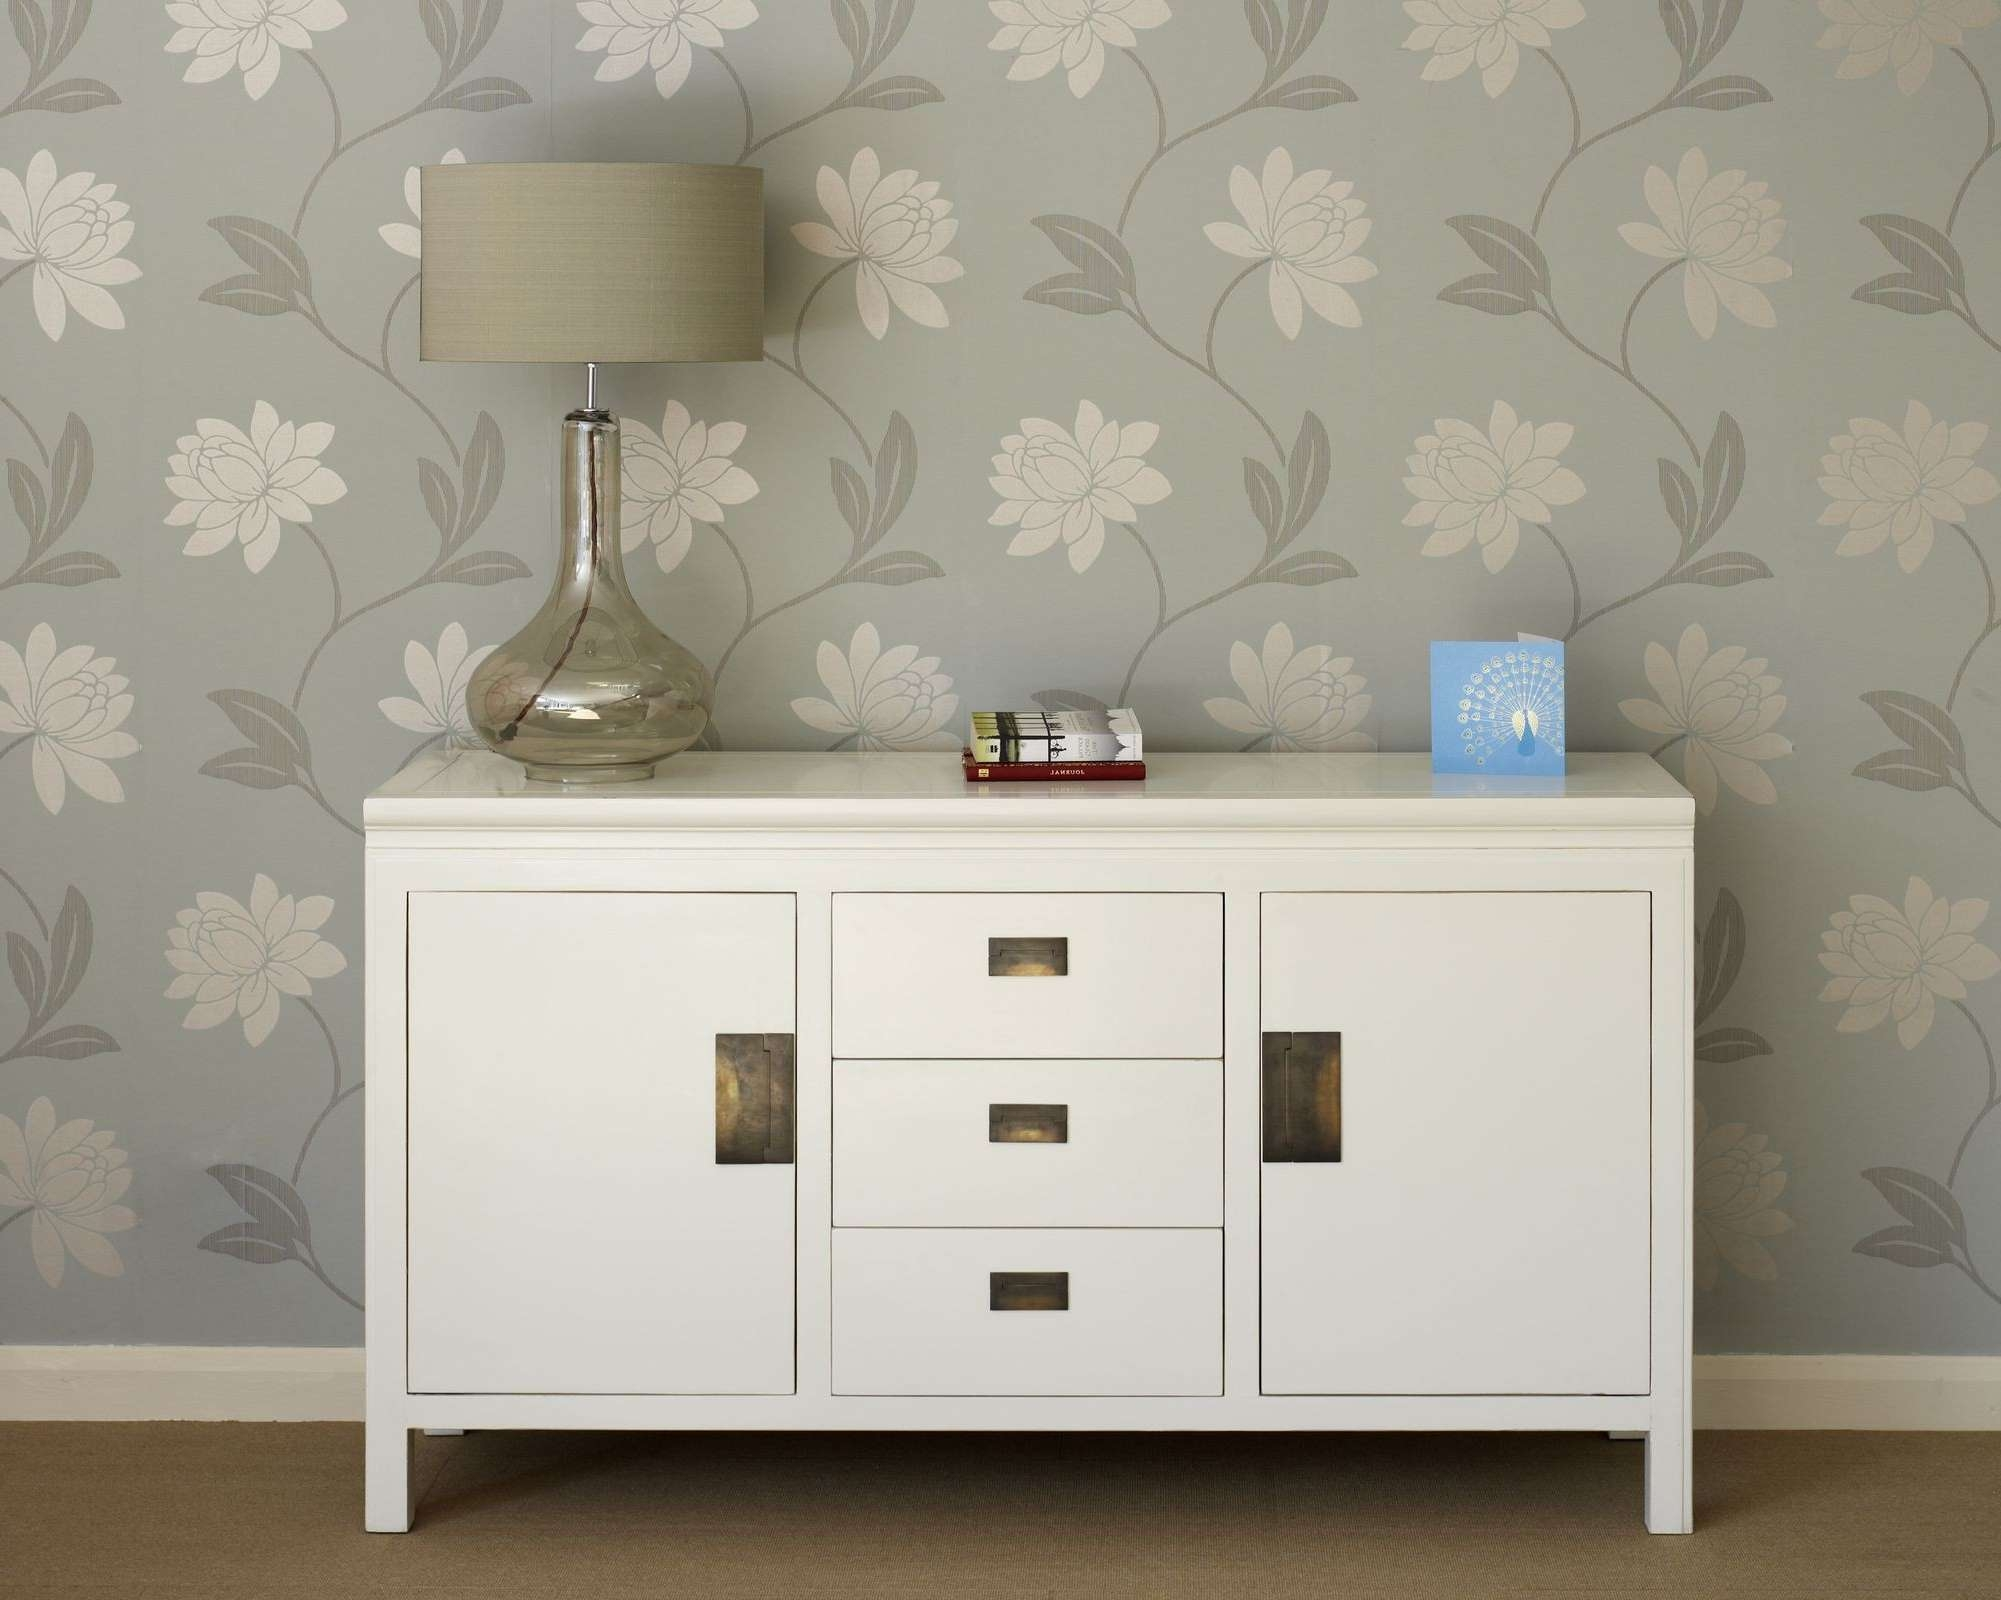 Oriental White Lacquer Sideboards – Shanxi With Regard To Large White Sideboards (Gallery 2 of 20)